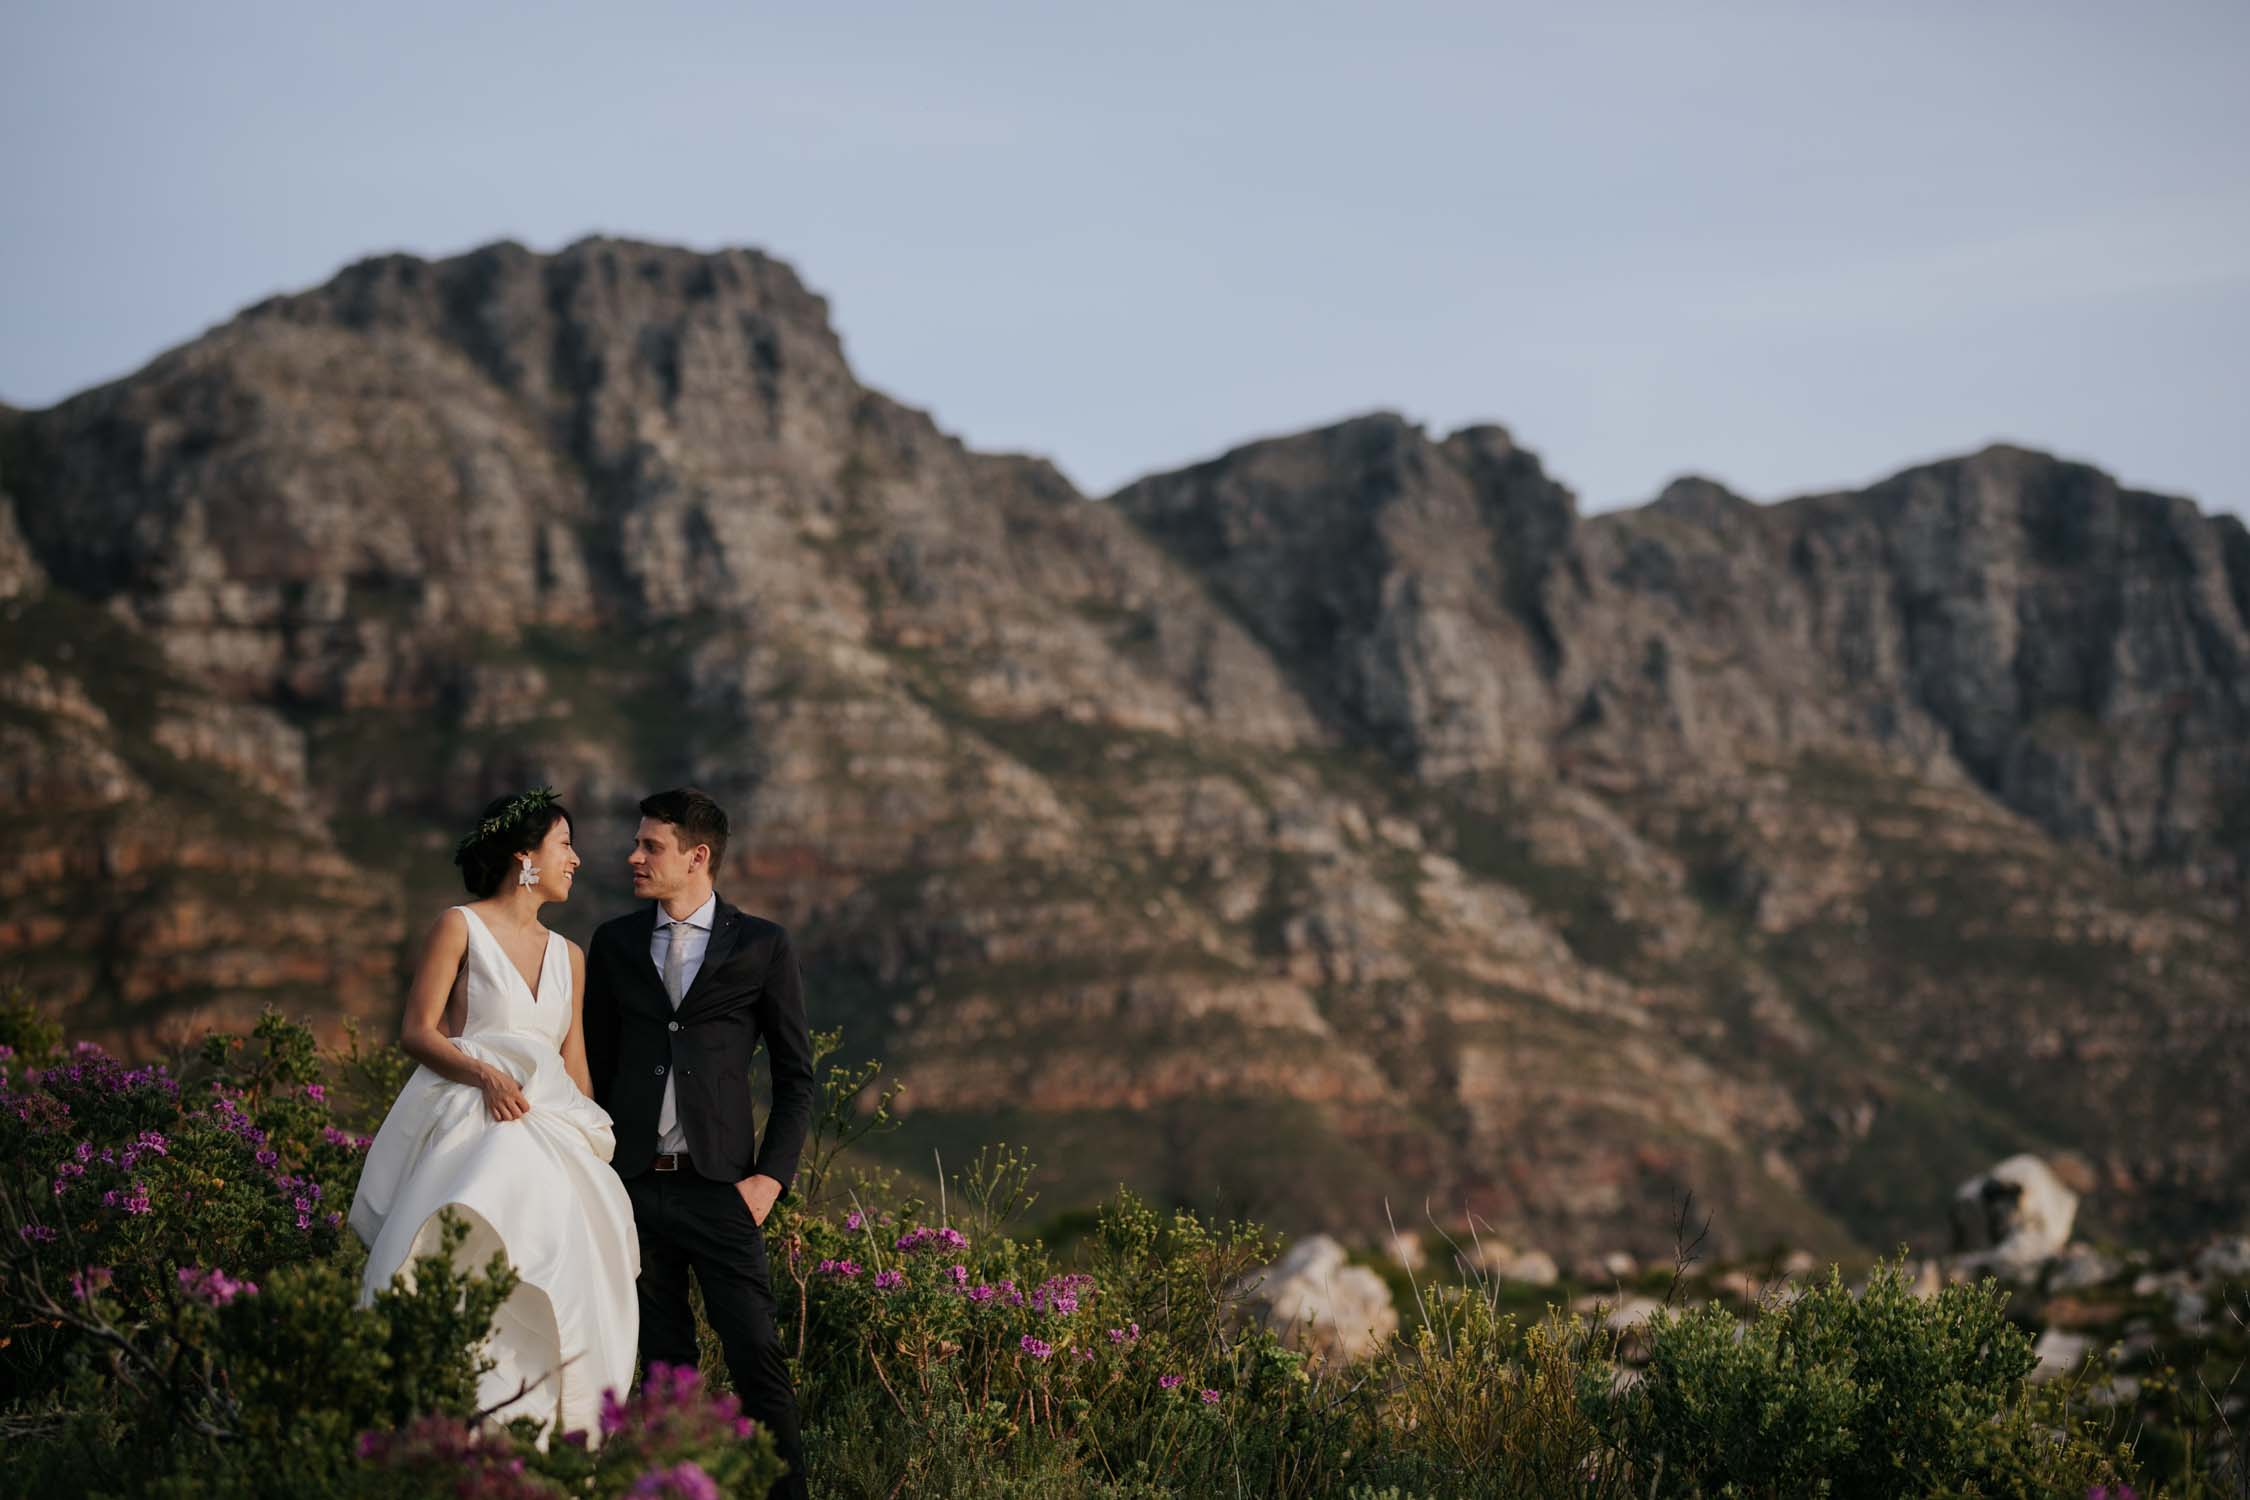 Epic Scenic Wedding Photos In Mountains